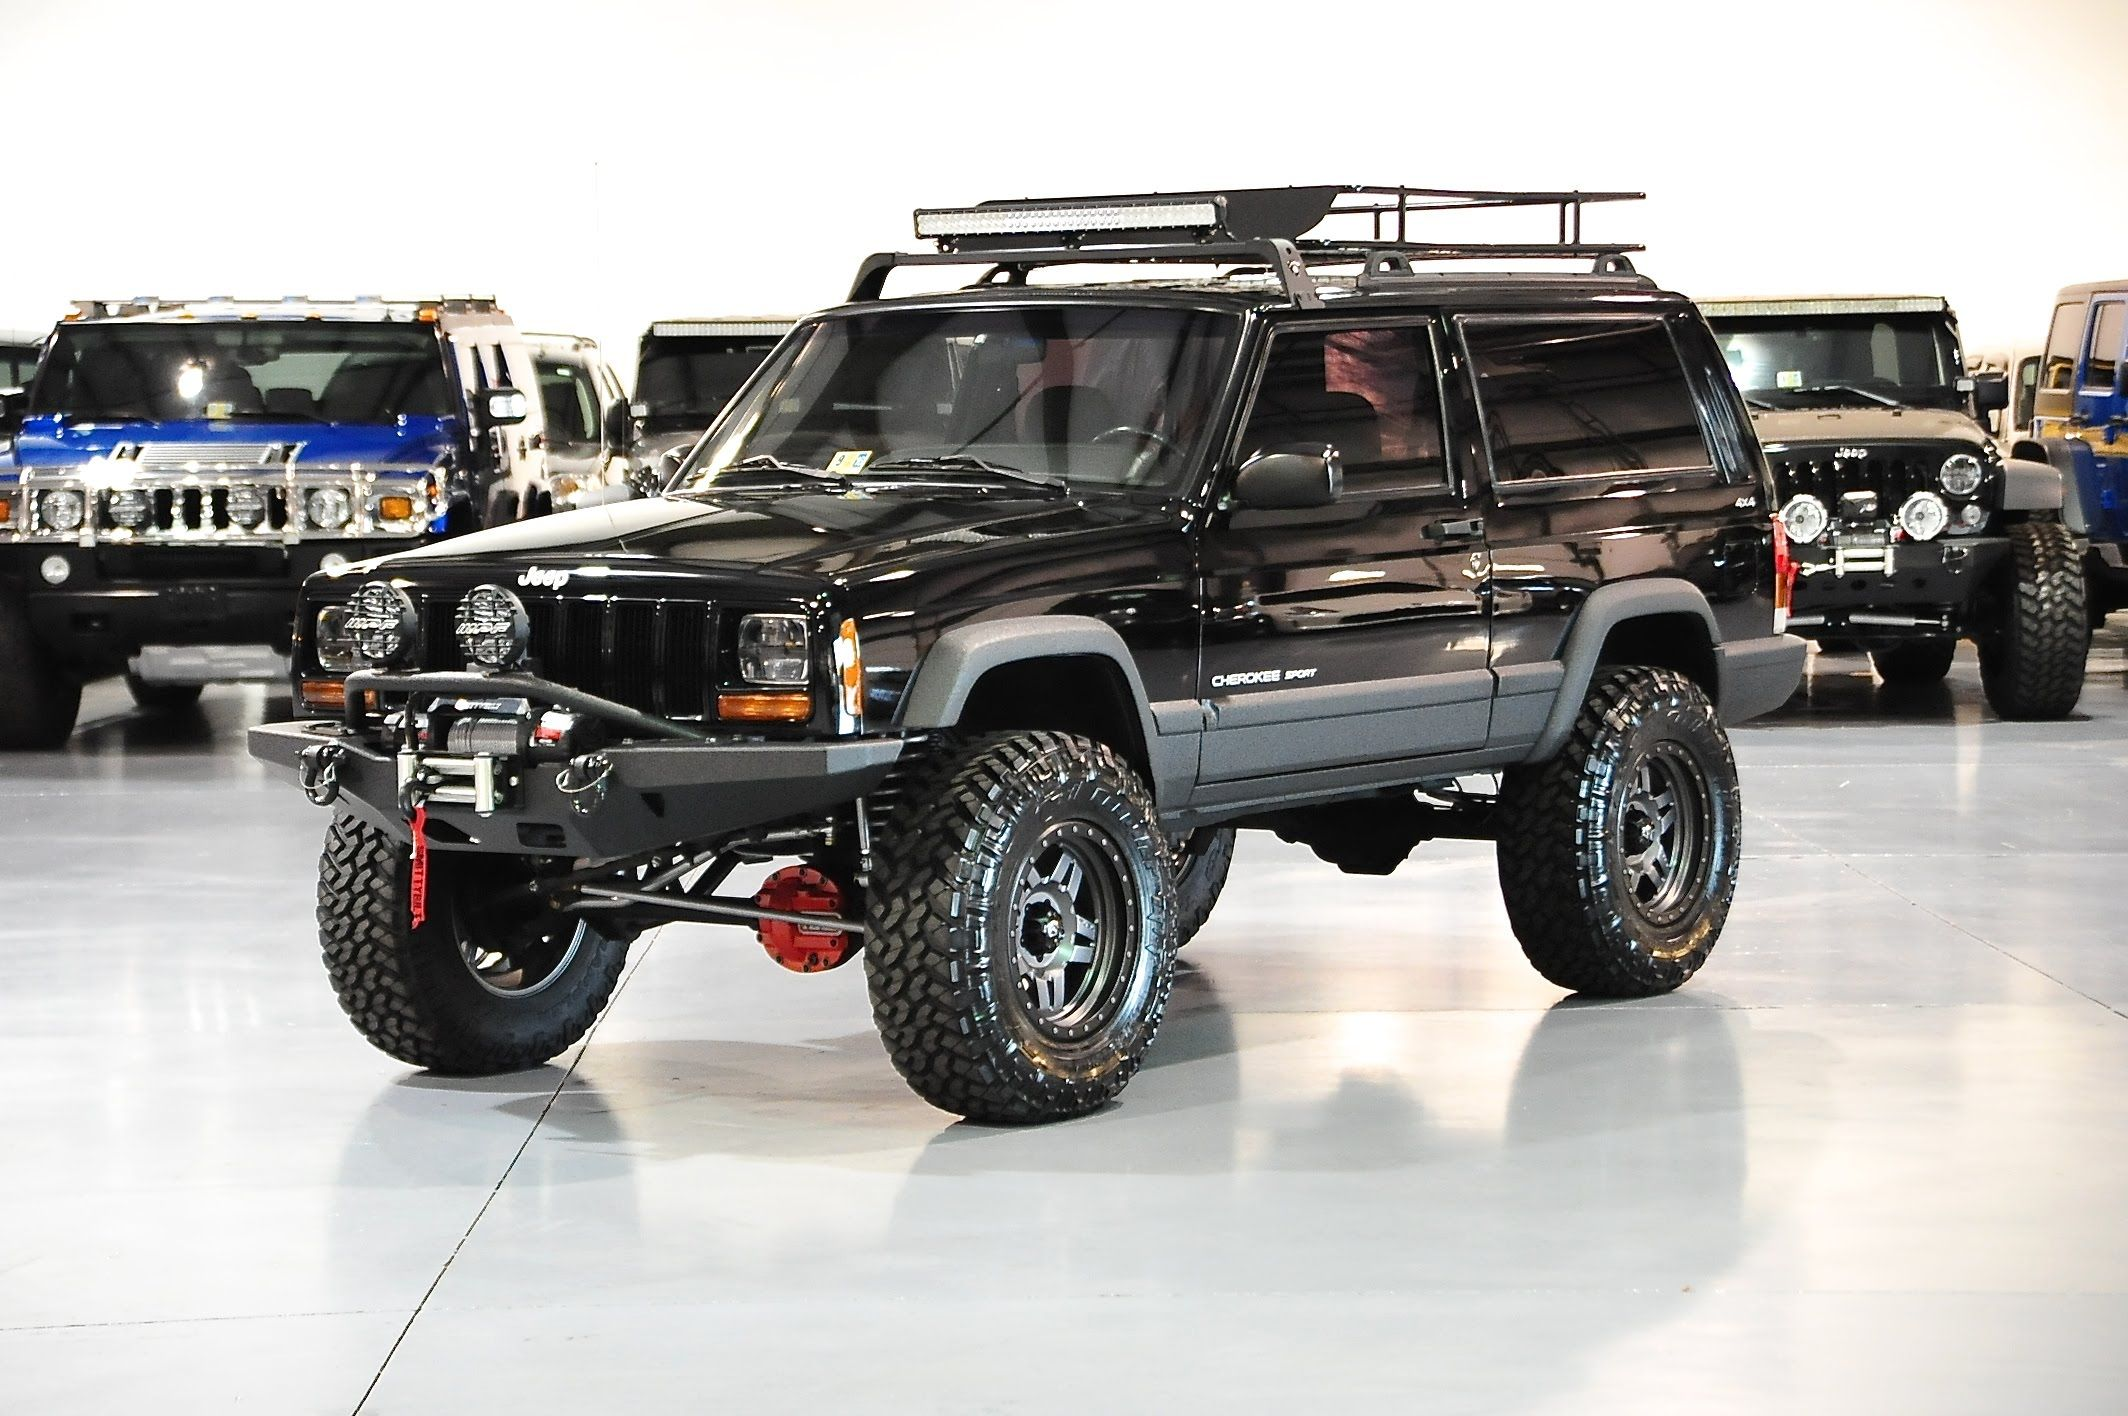 Davis Autosports 2 Door Lifted Built Cherokee Xj Sport For